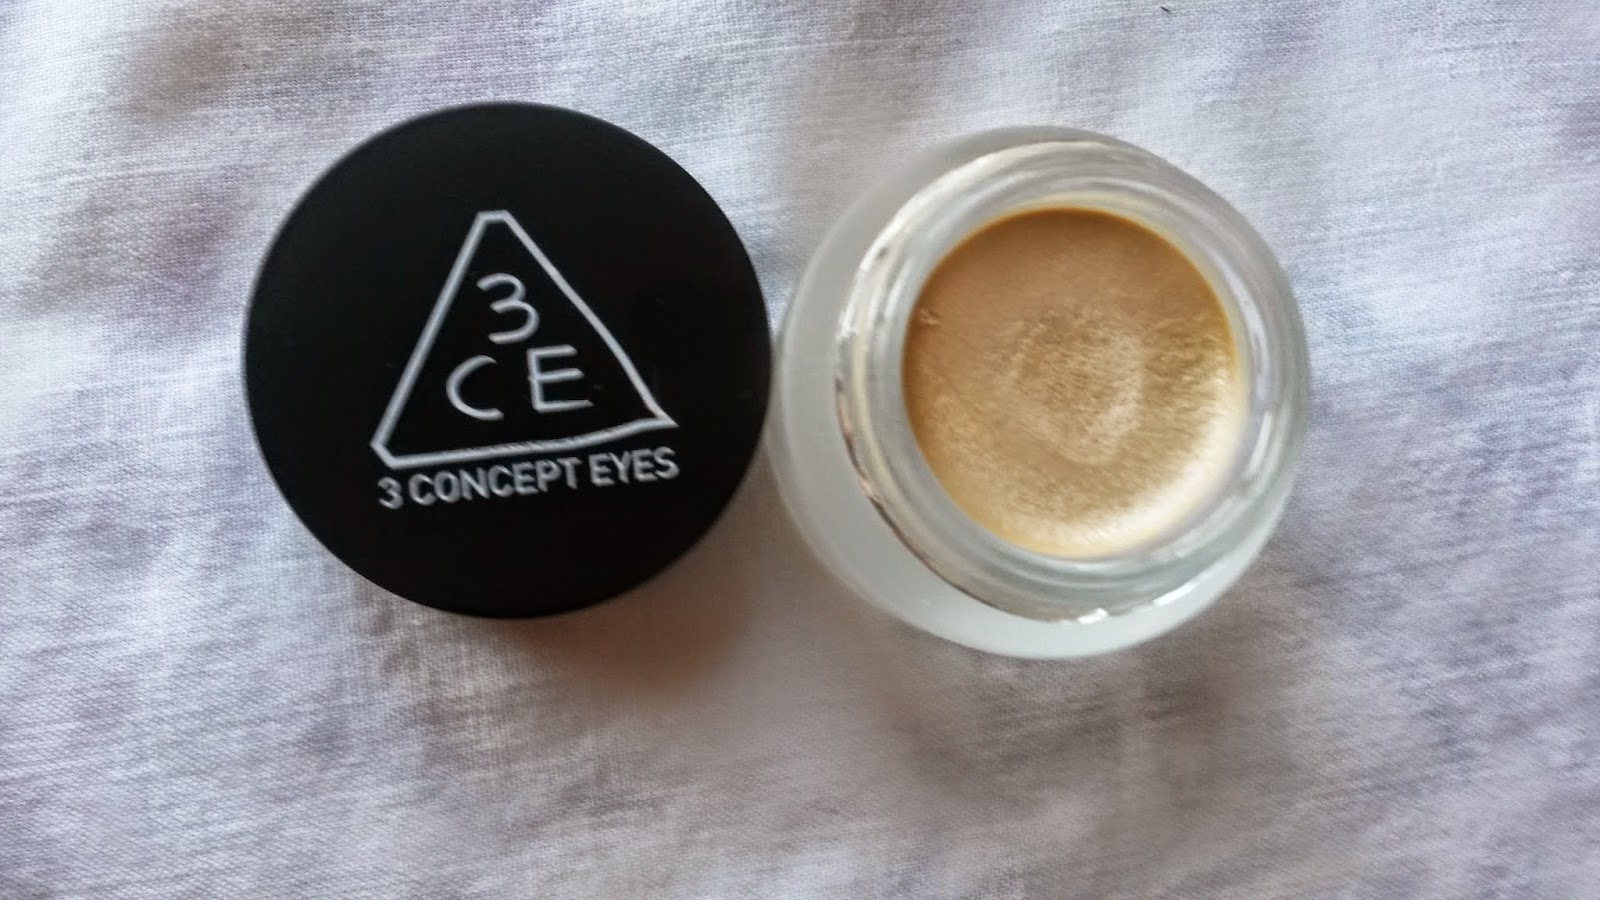 3CE - GLAM CREAM SHADOW in SPOTLIGHT